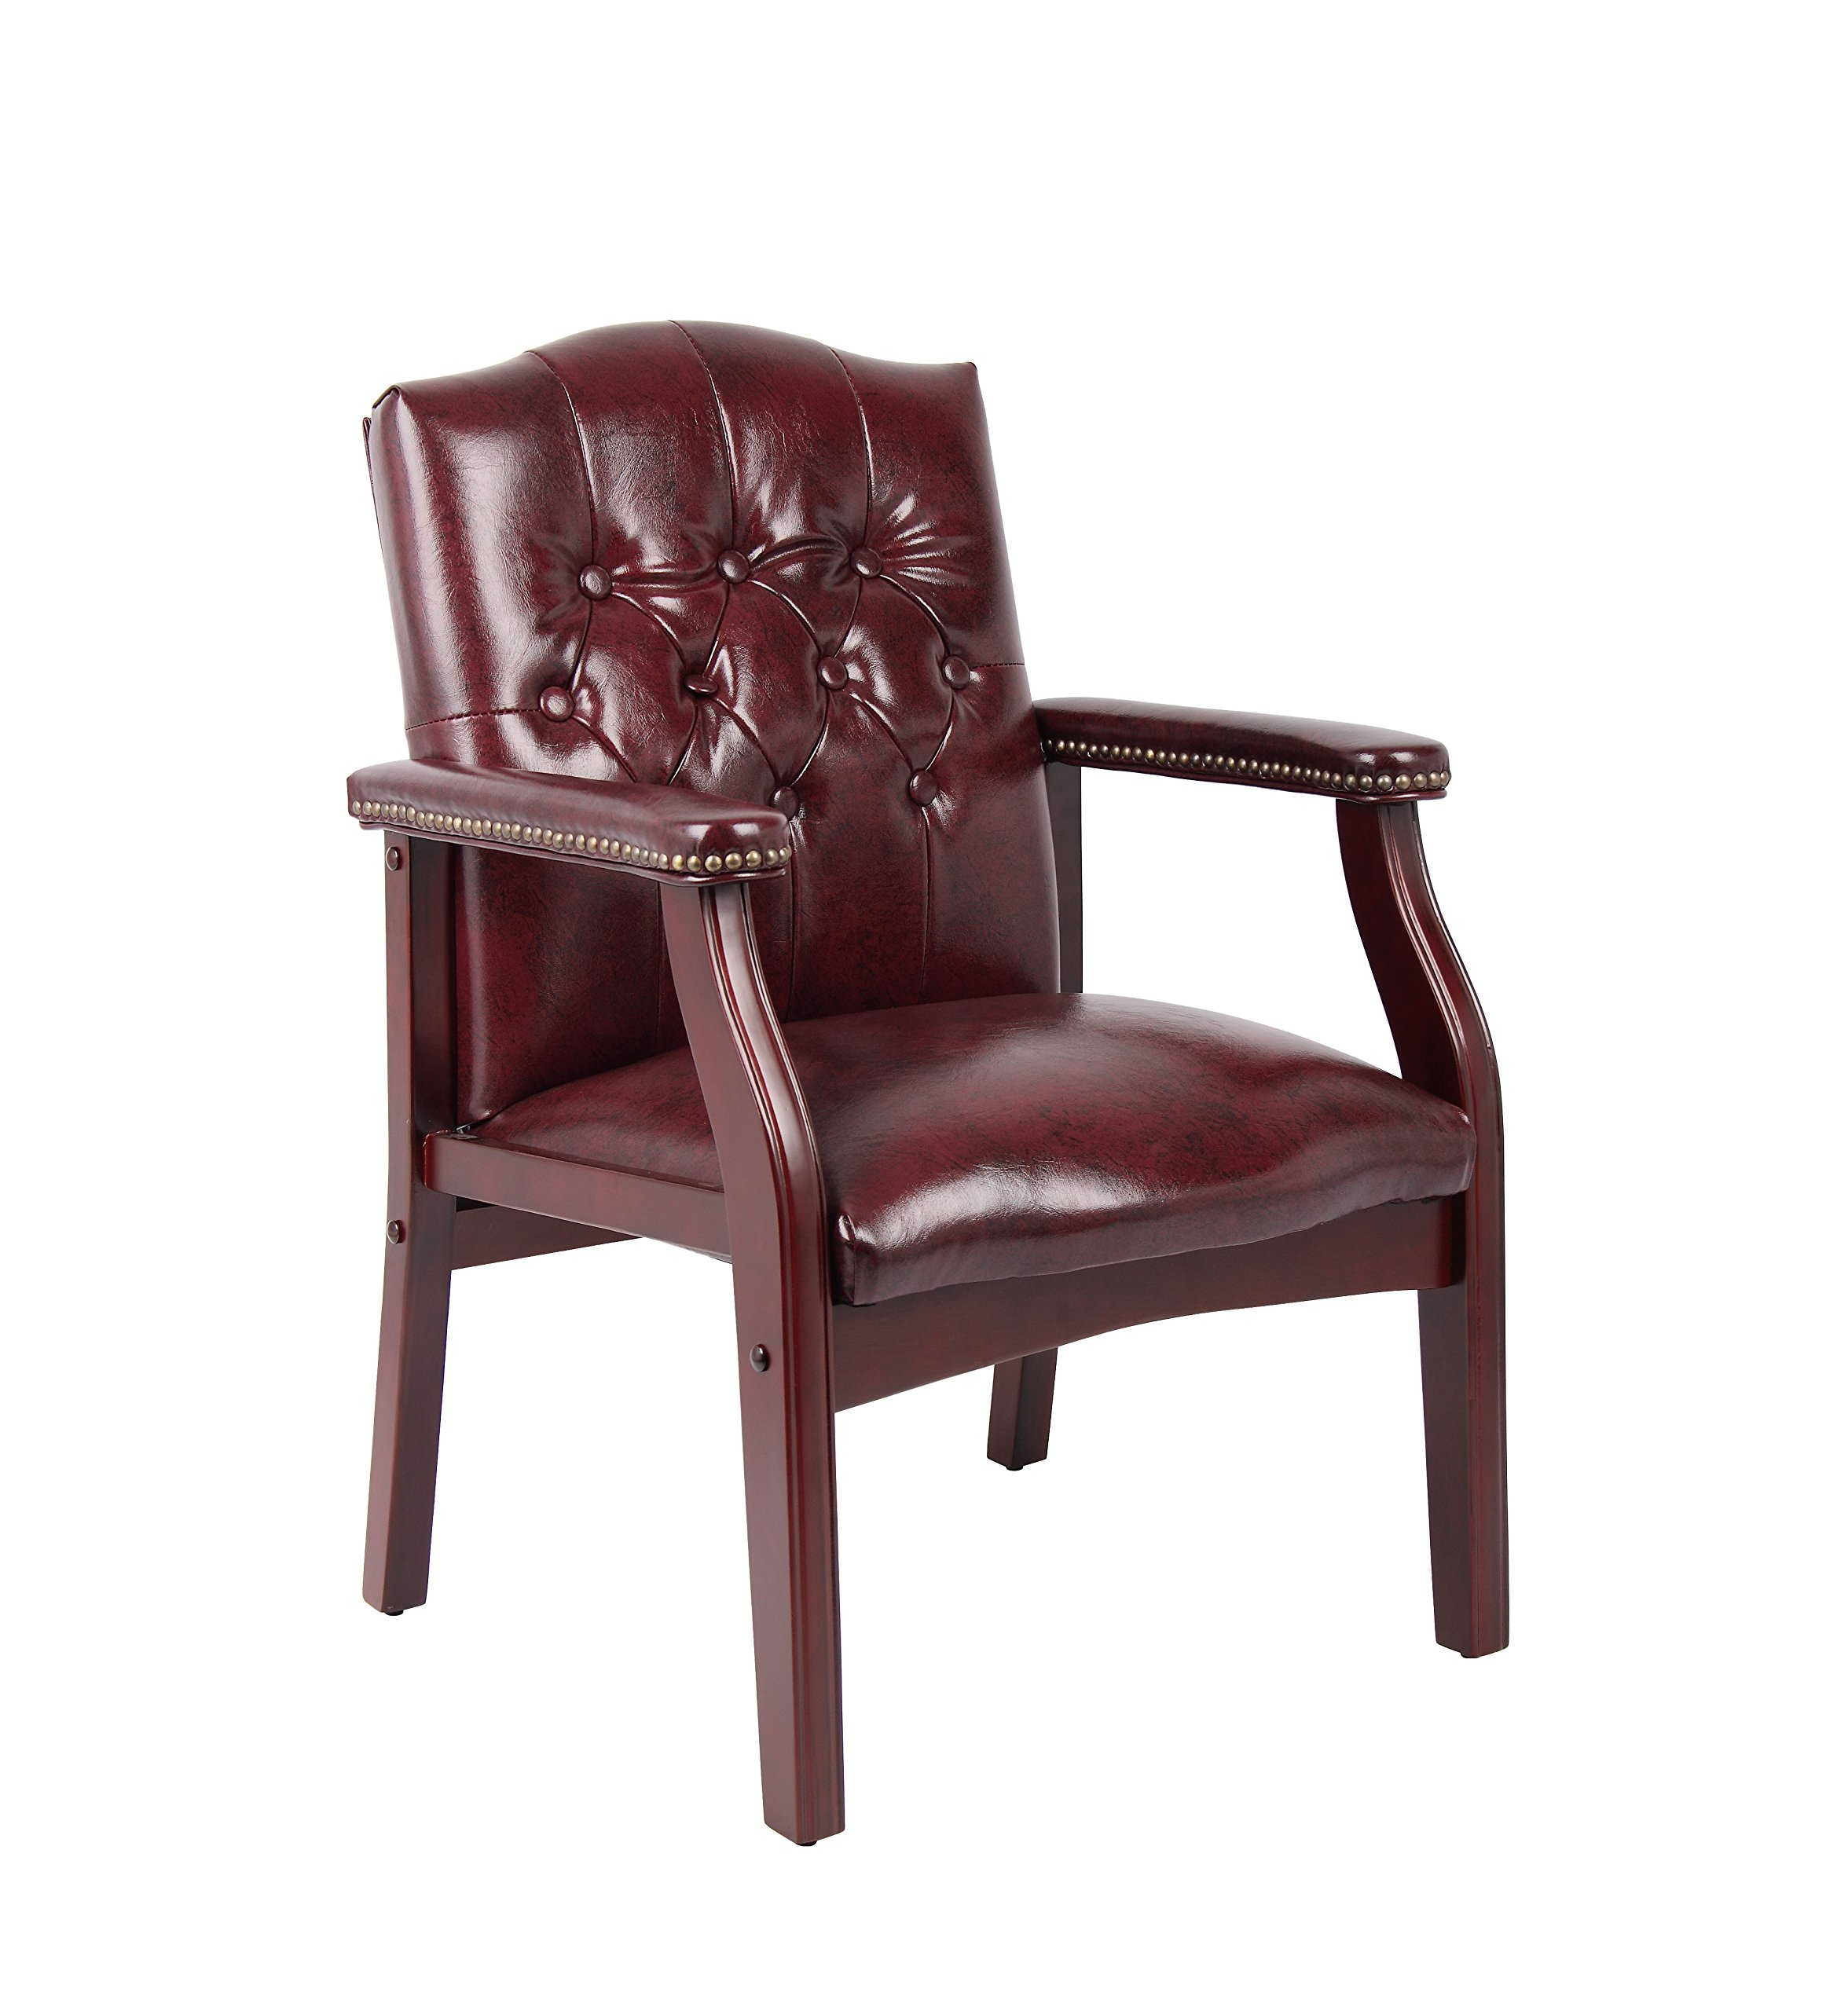 Boss Office Products B959-BY Ivy League Executive Guest Chair in Burgundy by Boss Office Products (Image #1)